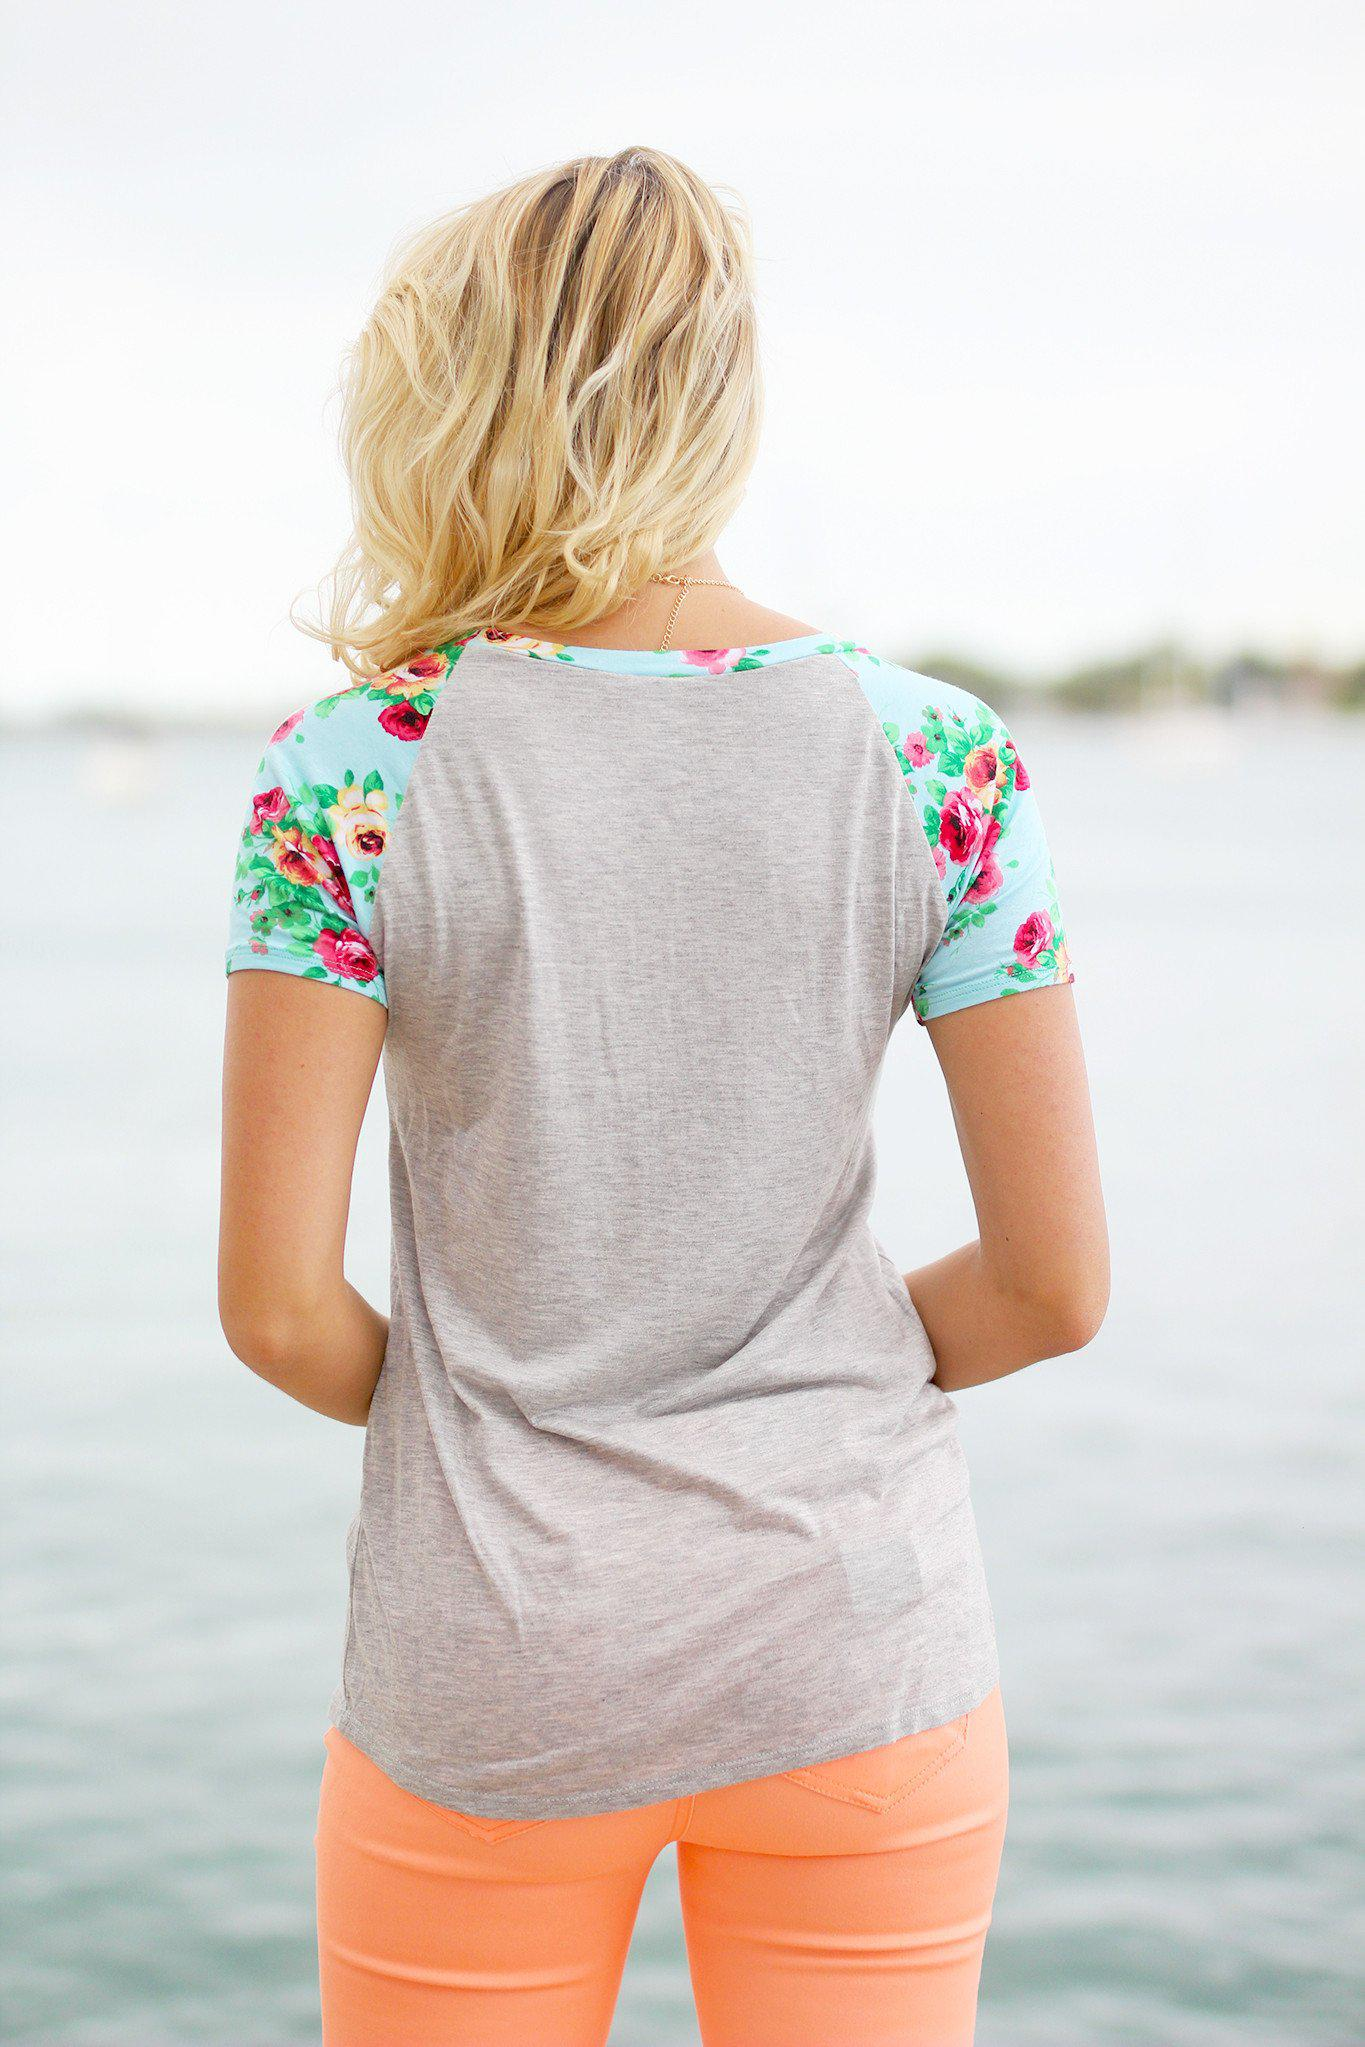 Heather Gray Top with Mint Floral Sleeves